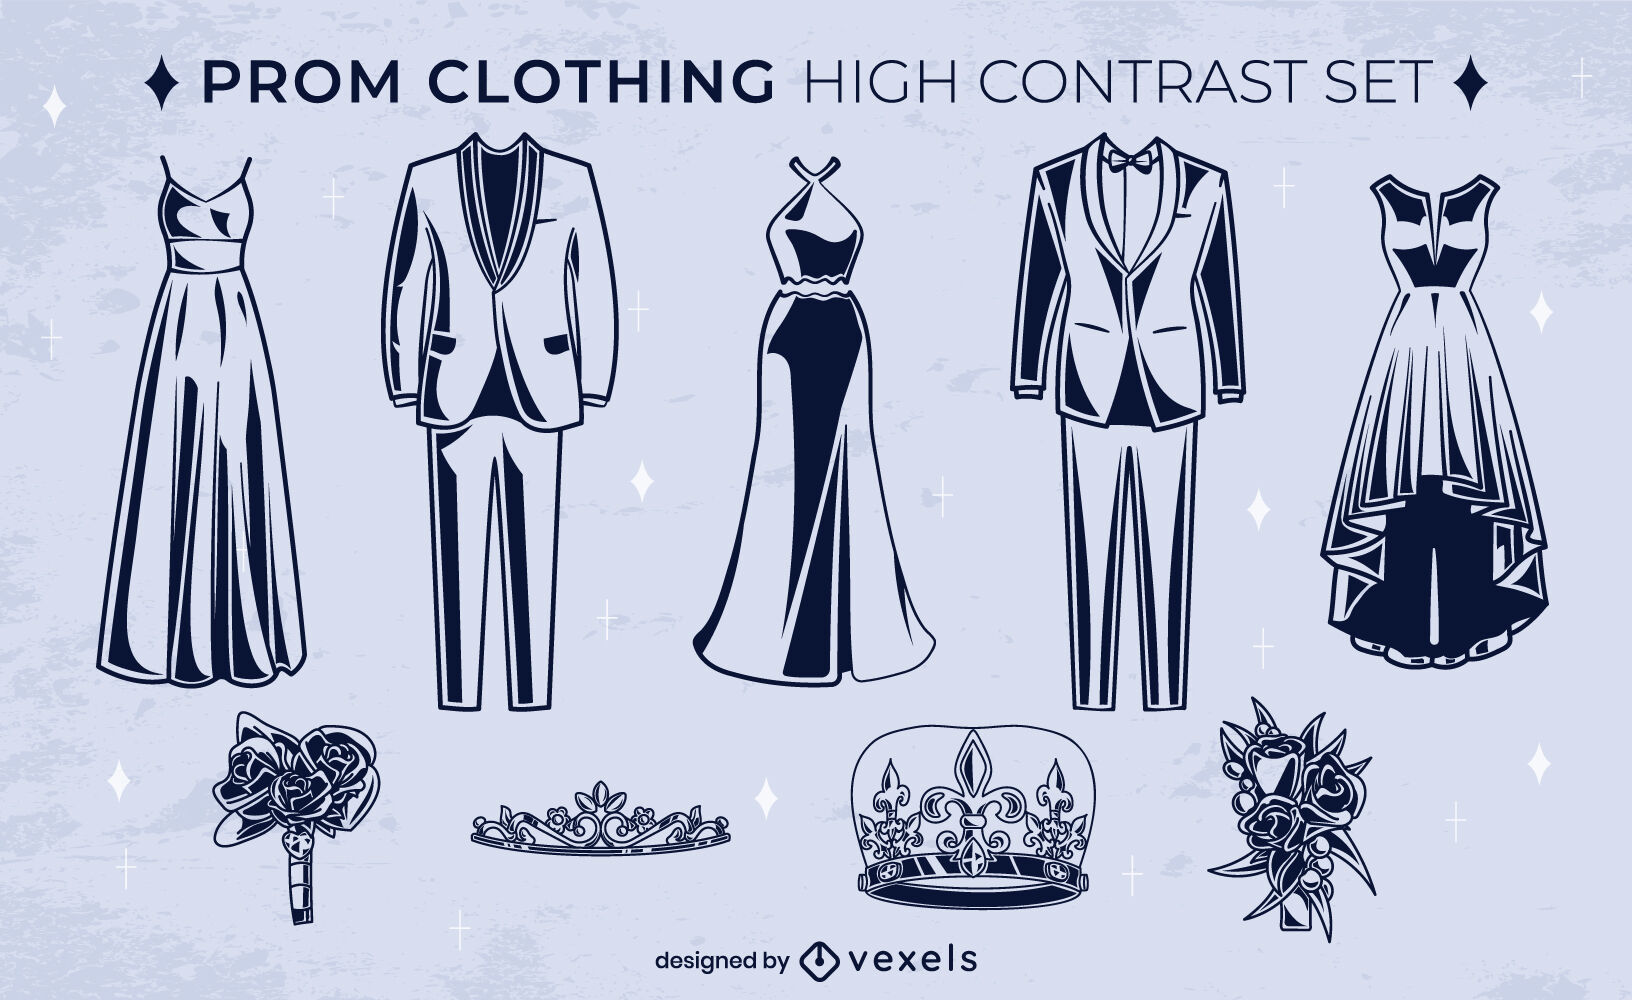 Prom night dance clothing high contrast set